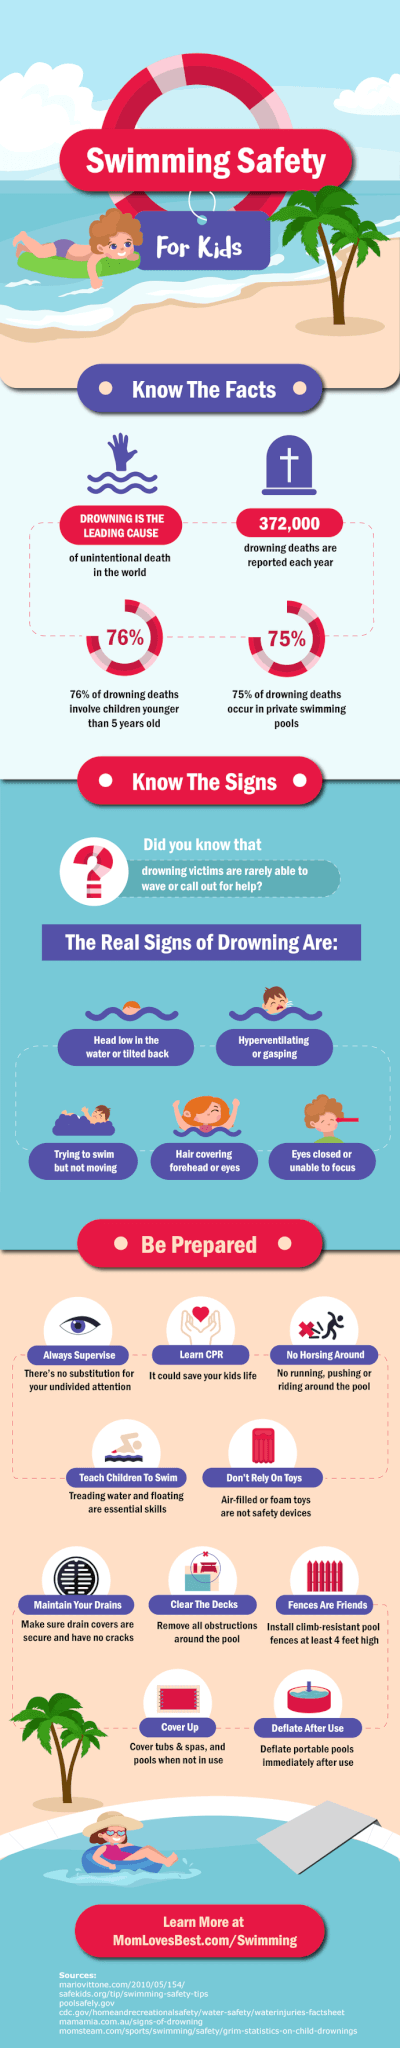 TOTS Family, Parenting, Kids, Food, Crafts, DIY and Travel What-You-Need-To-Know-About-Swimming-Safety-Swimming-Safety-For-Kids-Infographic Water Fun: What You Need To Know About Swimming Safety Health & Wellness Kids Parenting TOTS Family Uncategorized  secondary drowning dry drowning drowning